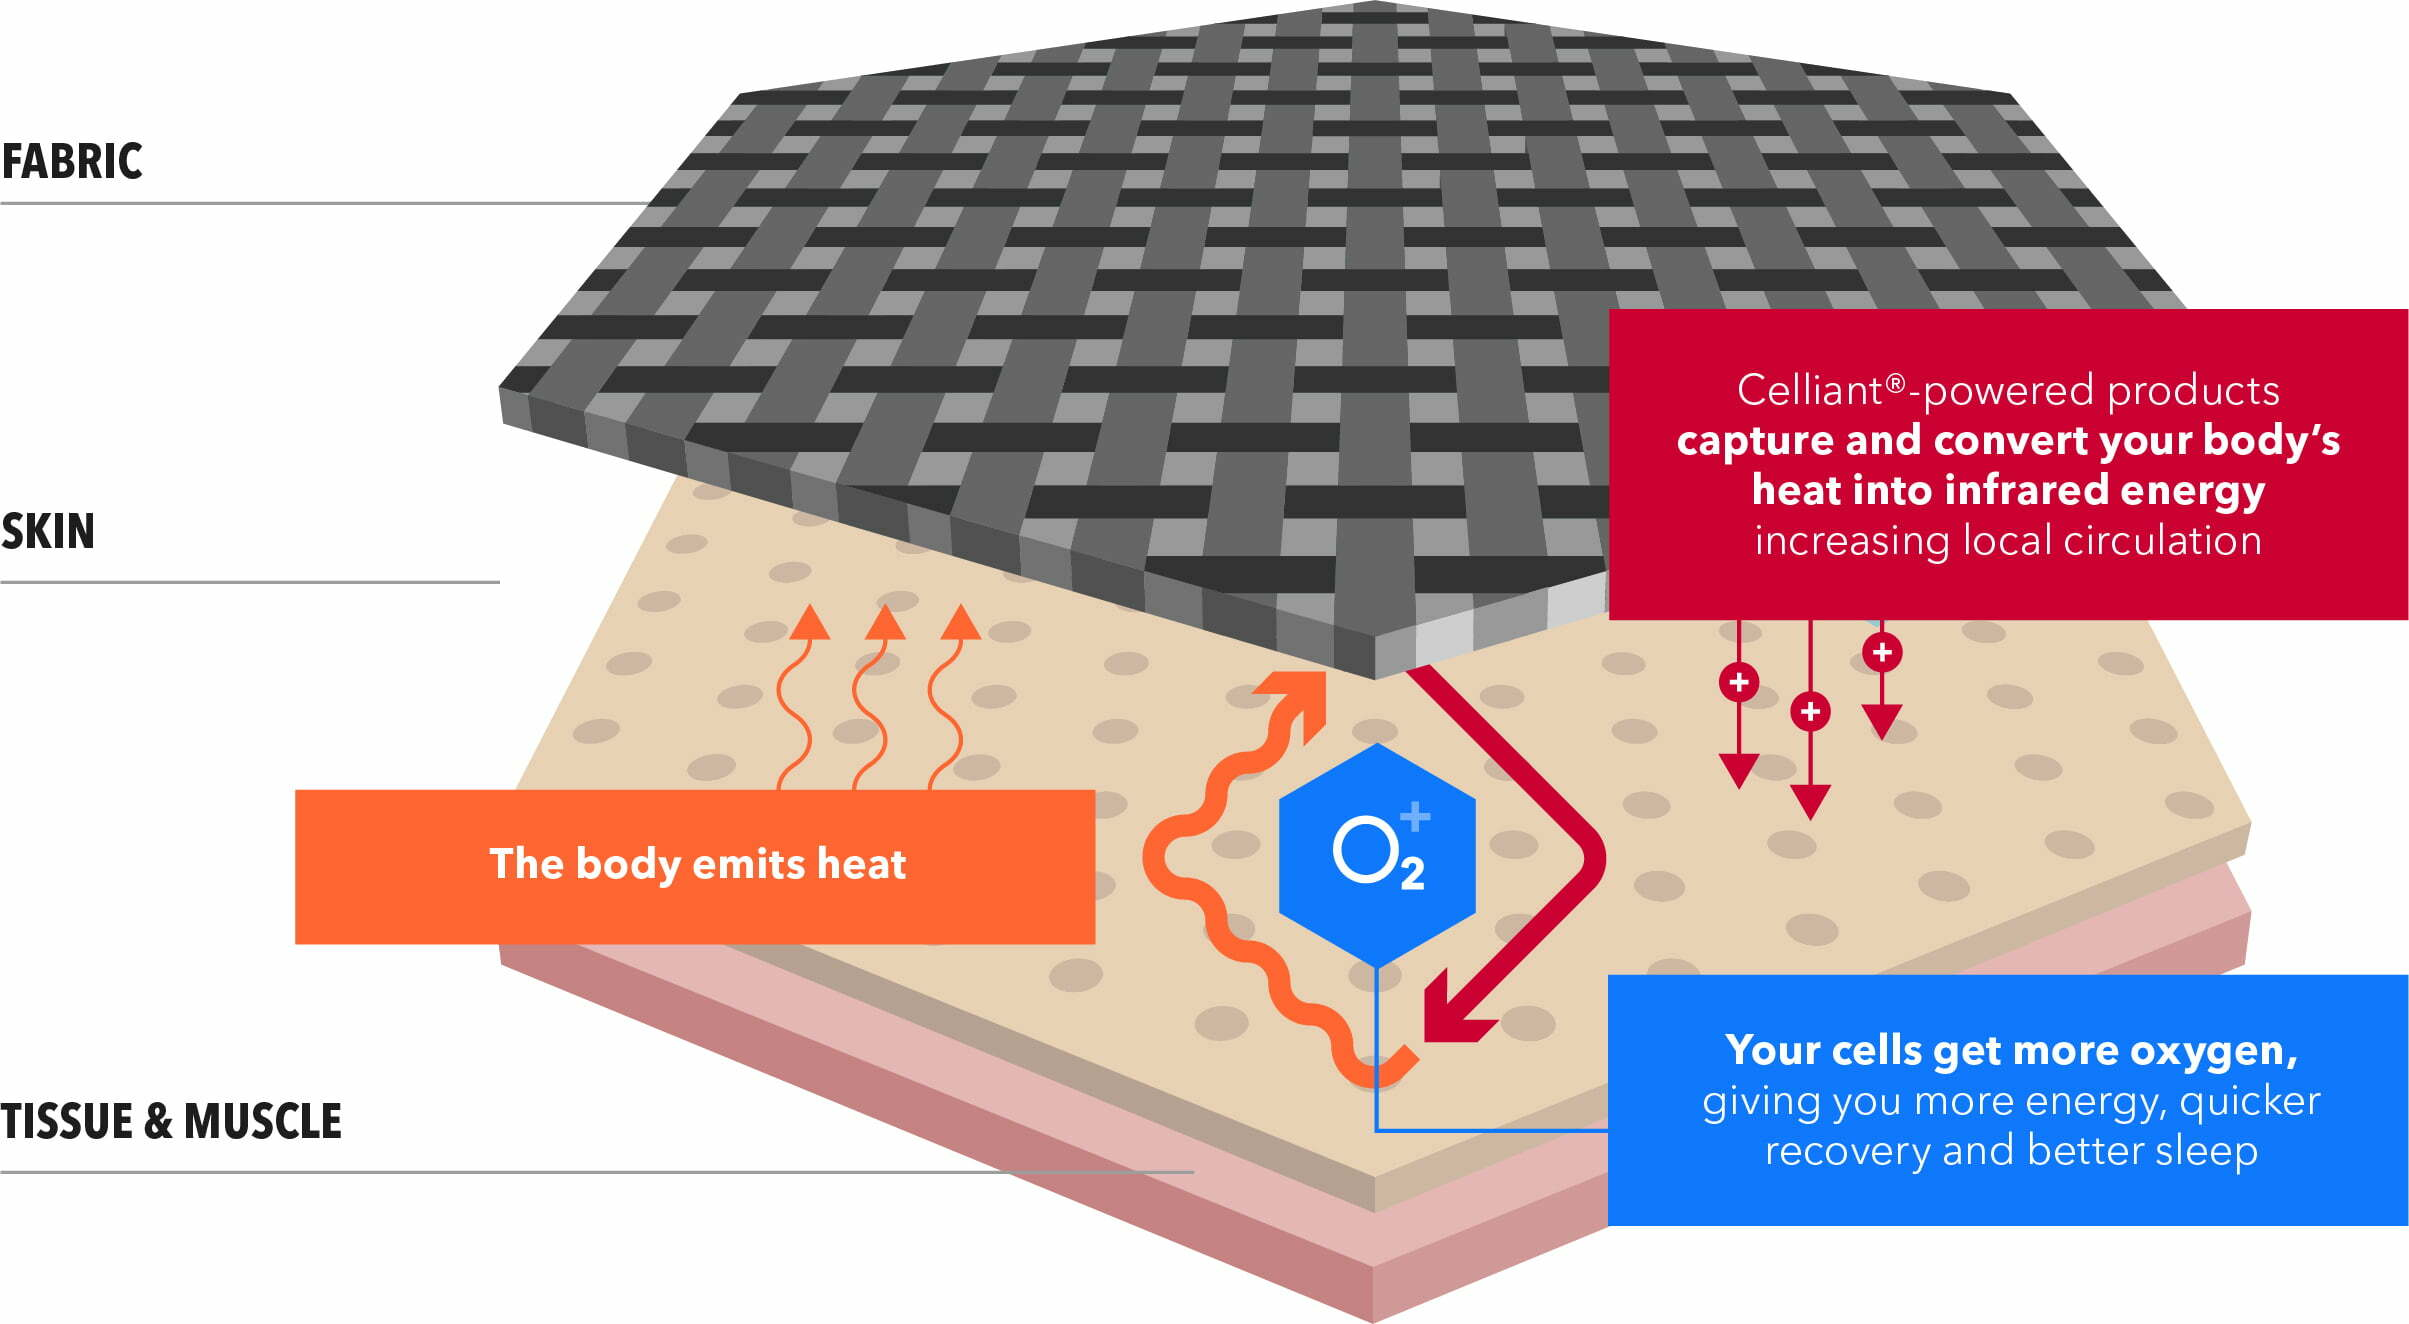 how it works diagram - Amplifying Human Potential: Celliant transforms body heat into infrared energy, resulting in a range of benefits such as increased performance and faster recovery.